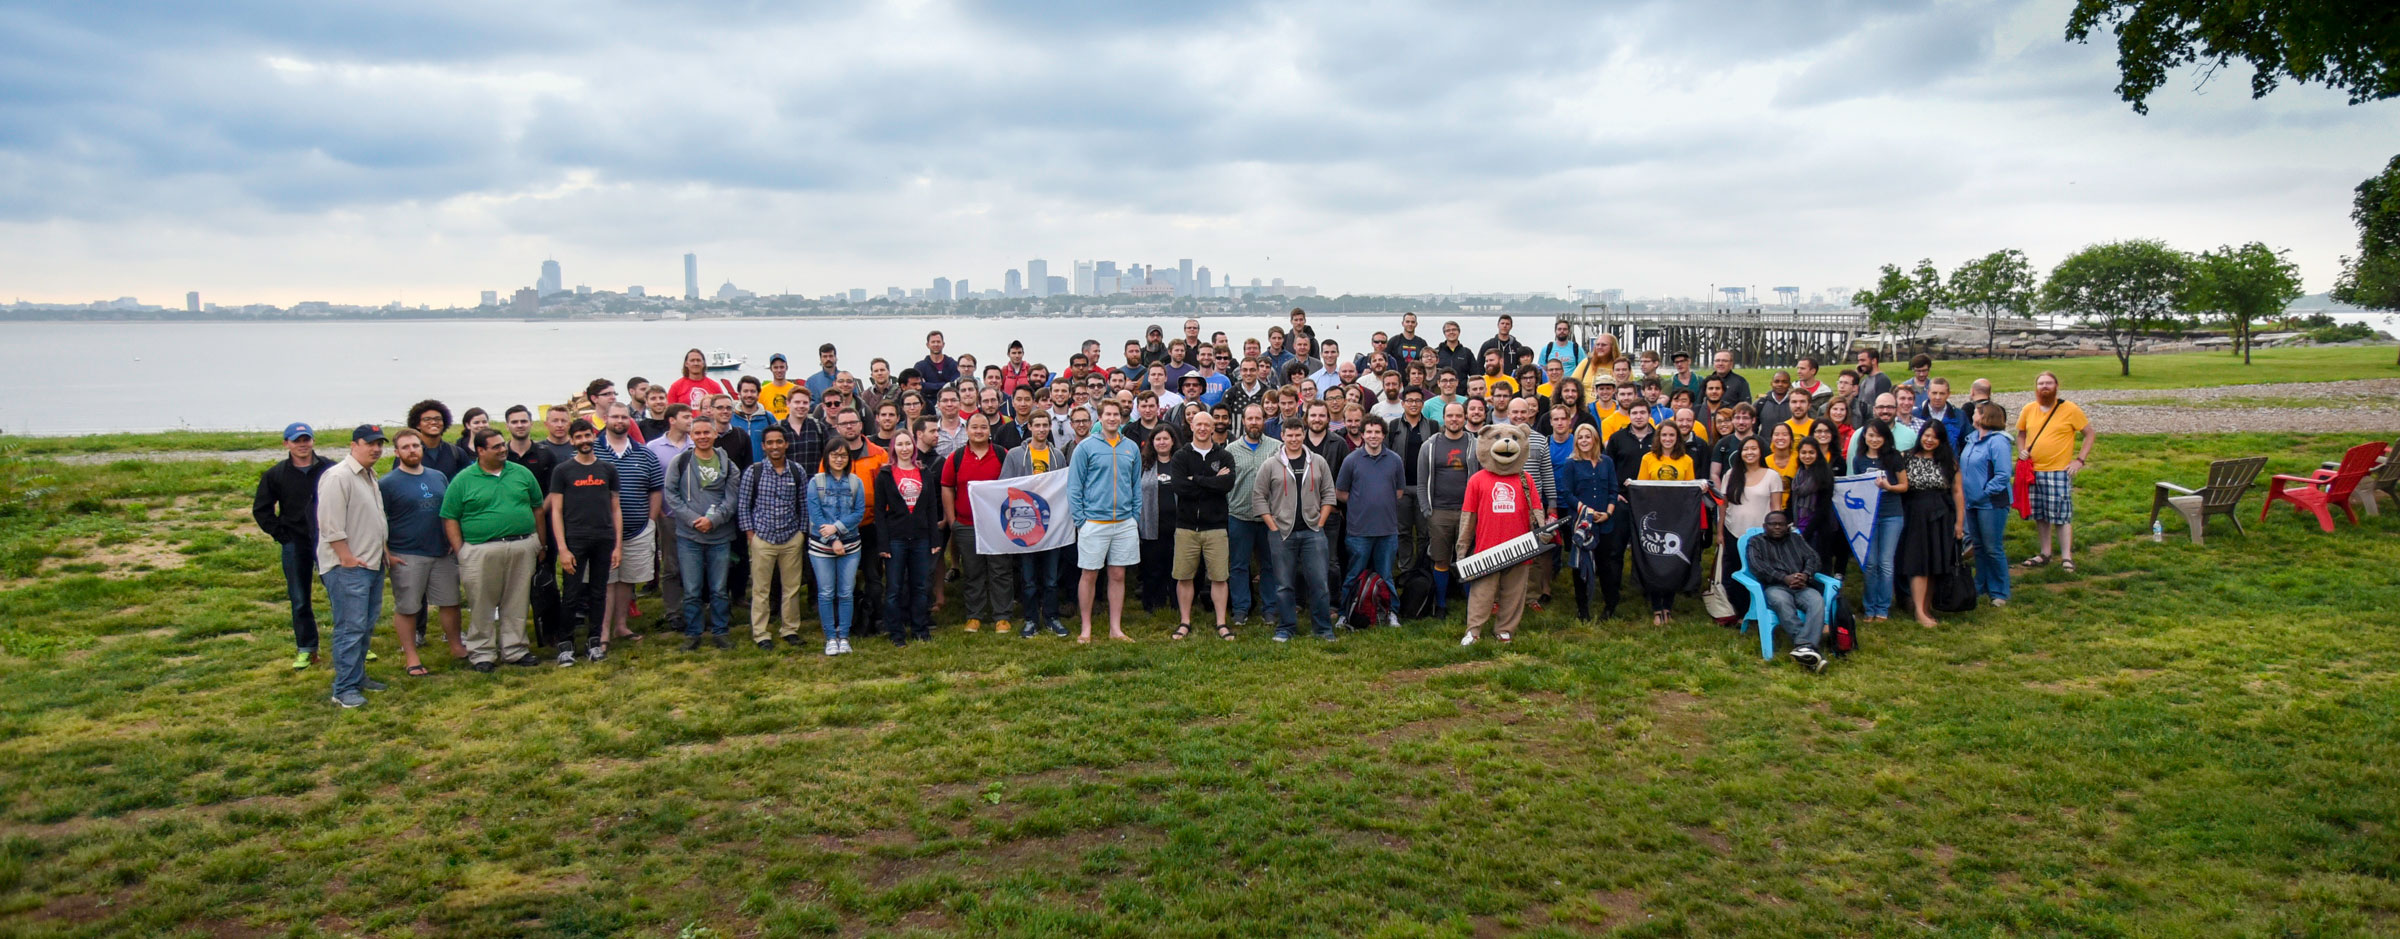 2015 Wicked Good Ember Conference, Boston